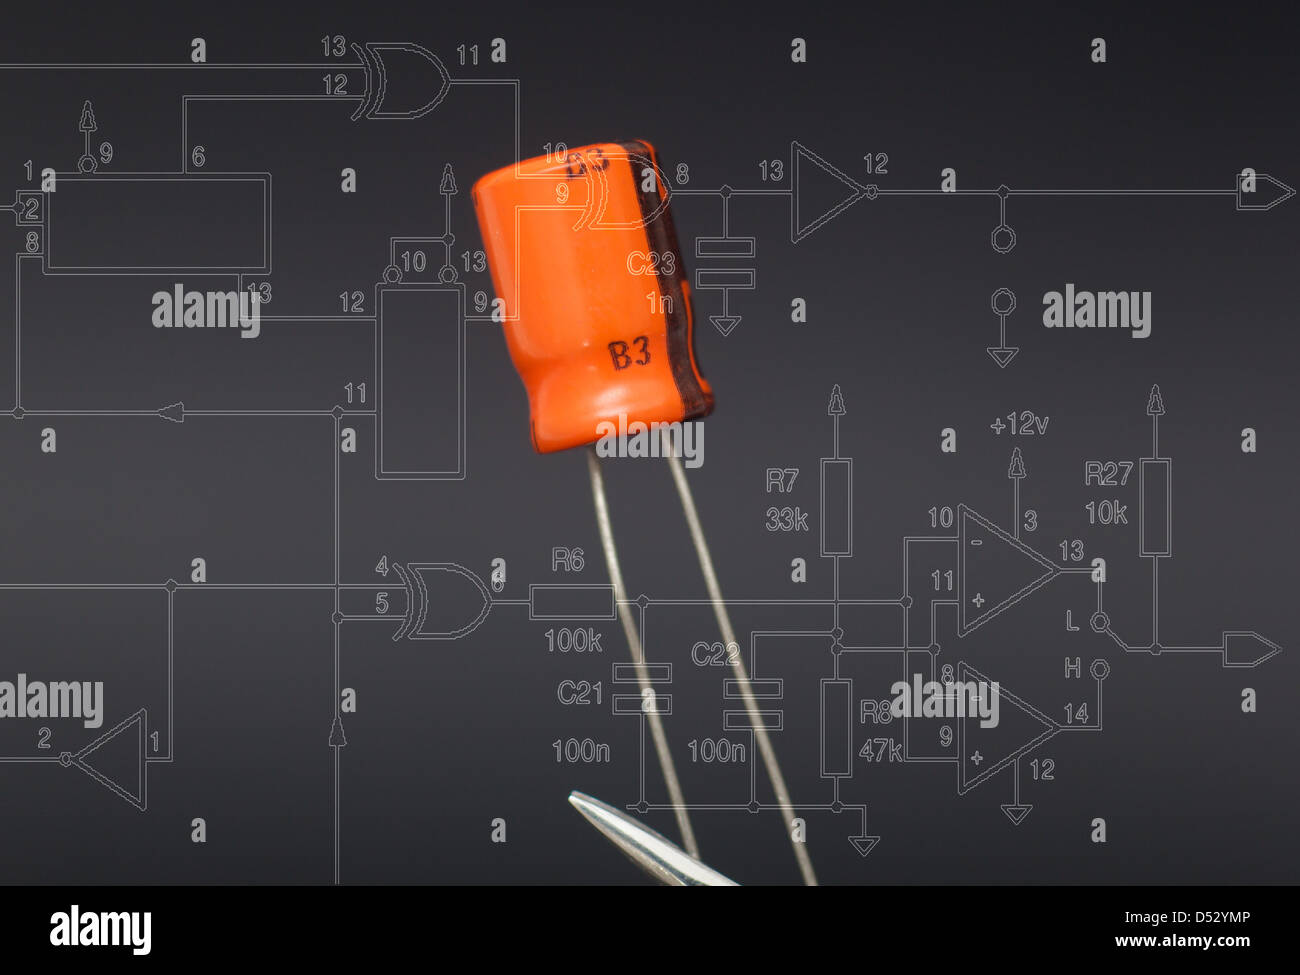 Glass On The Electronic Schematic Diagramideal Technology Background Component Diagram Stock Photos Images Alamy Detail Of Capacitor In Black Image